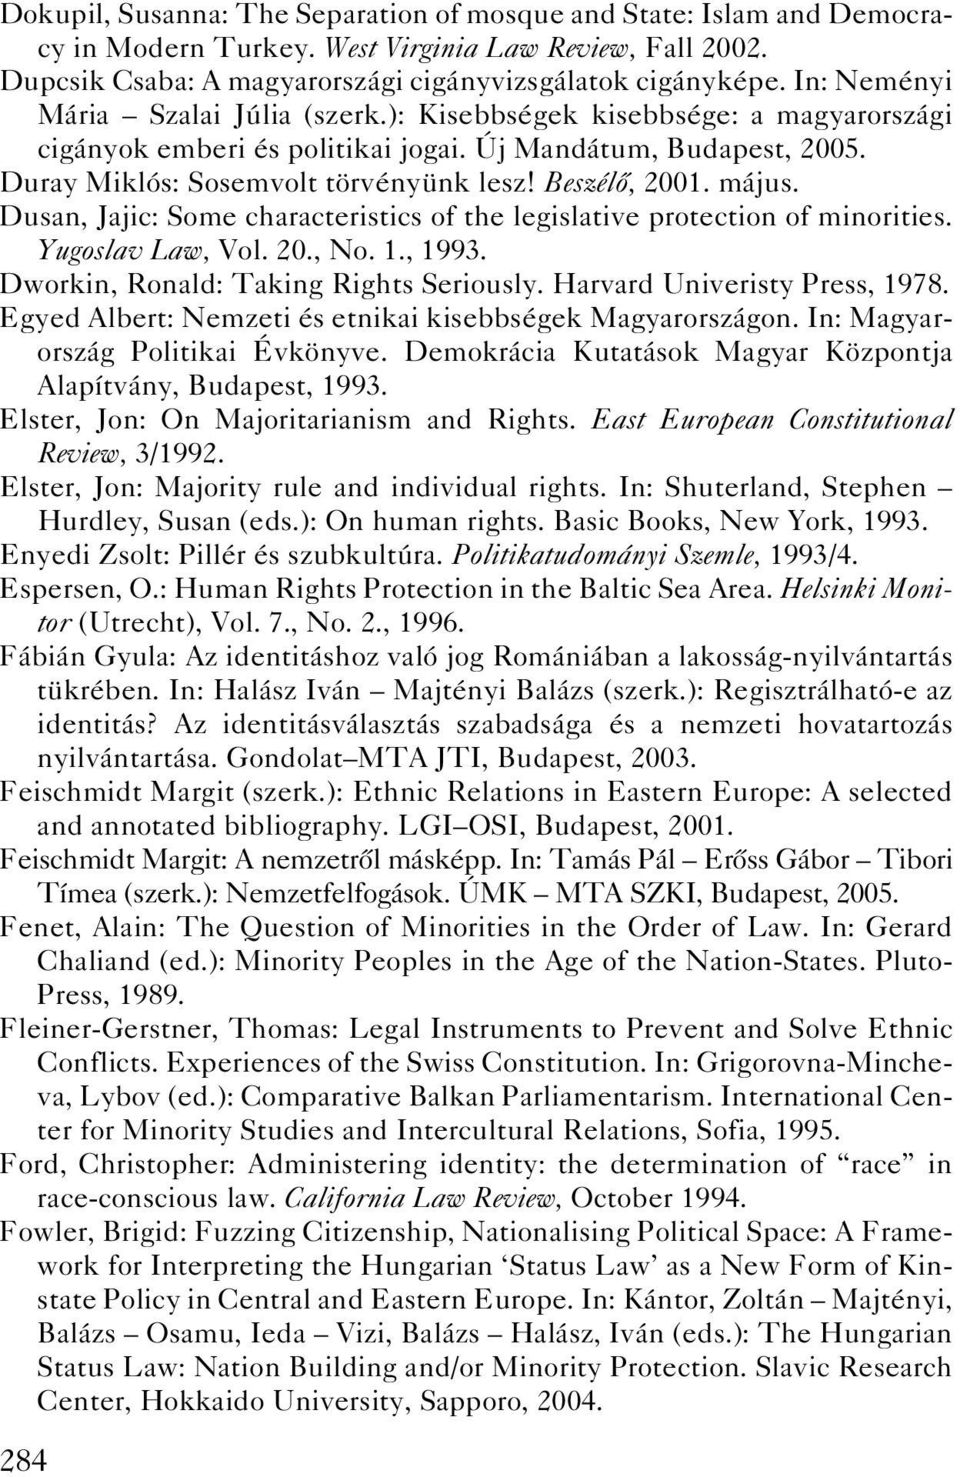 Beszélô, 2001. május. Dusan, Jajic: Some characteristics of the legislative protection of minorities. Yugoslav Law, Vol. 20., No. 1., 1993. Dworkin, Ronald: Taking Rights Seriously.